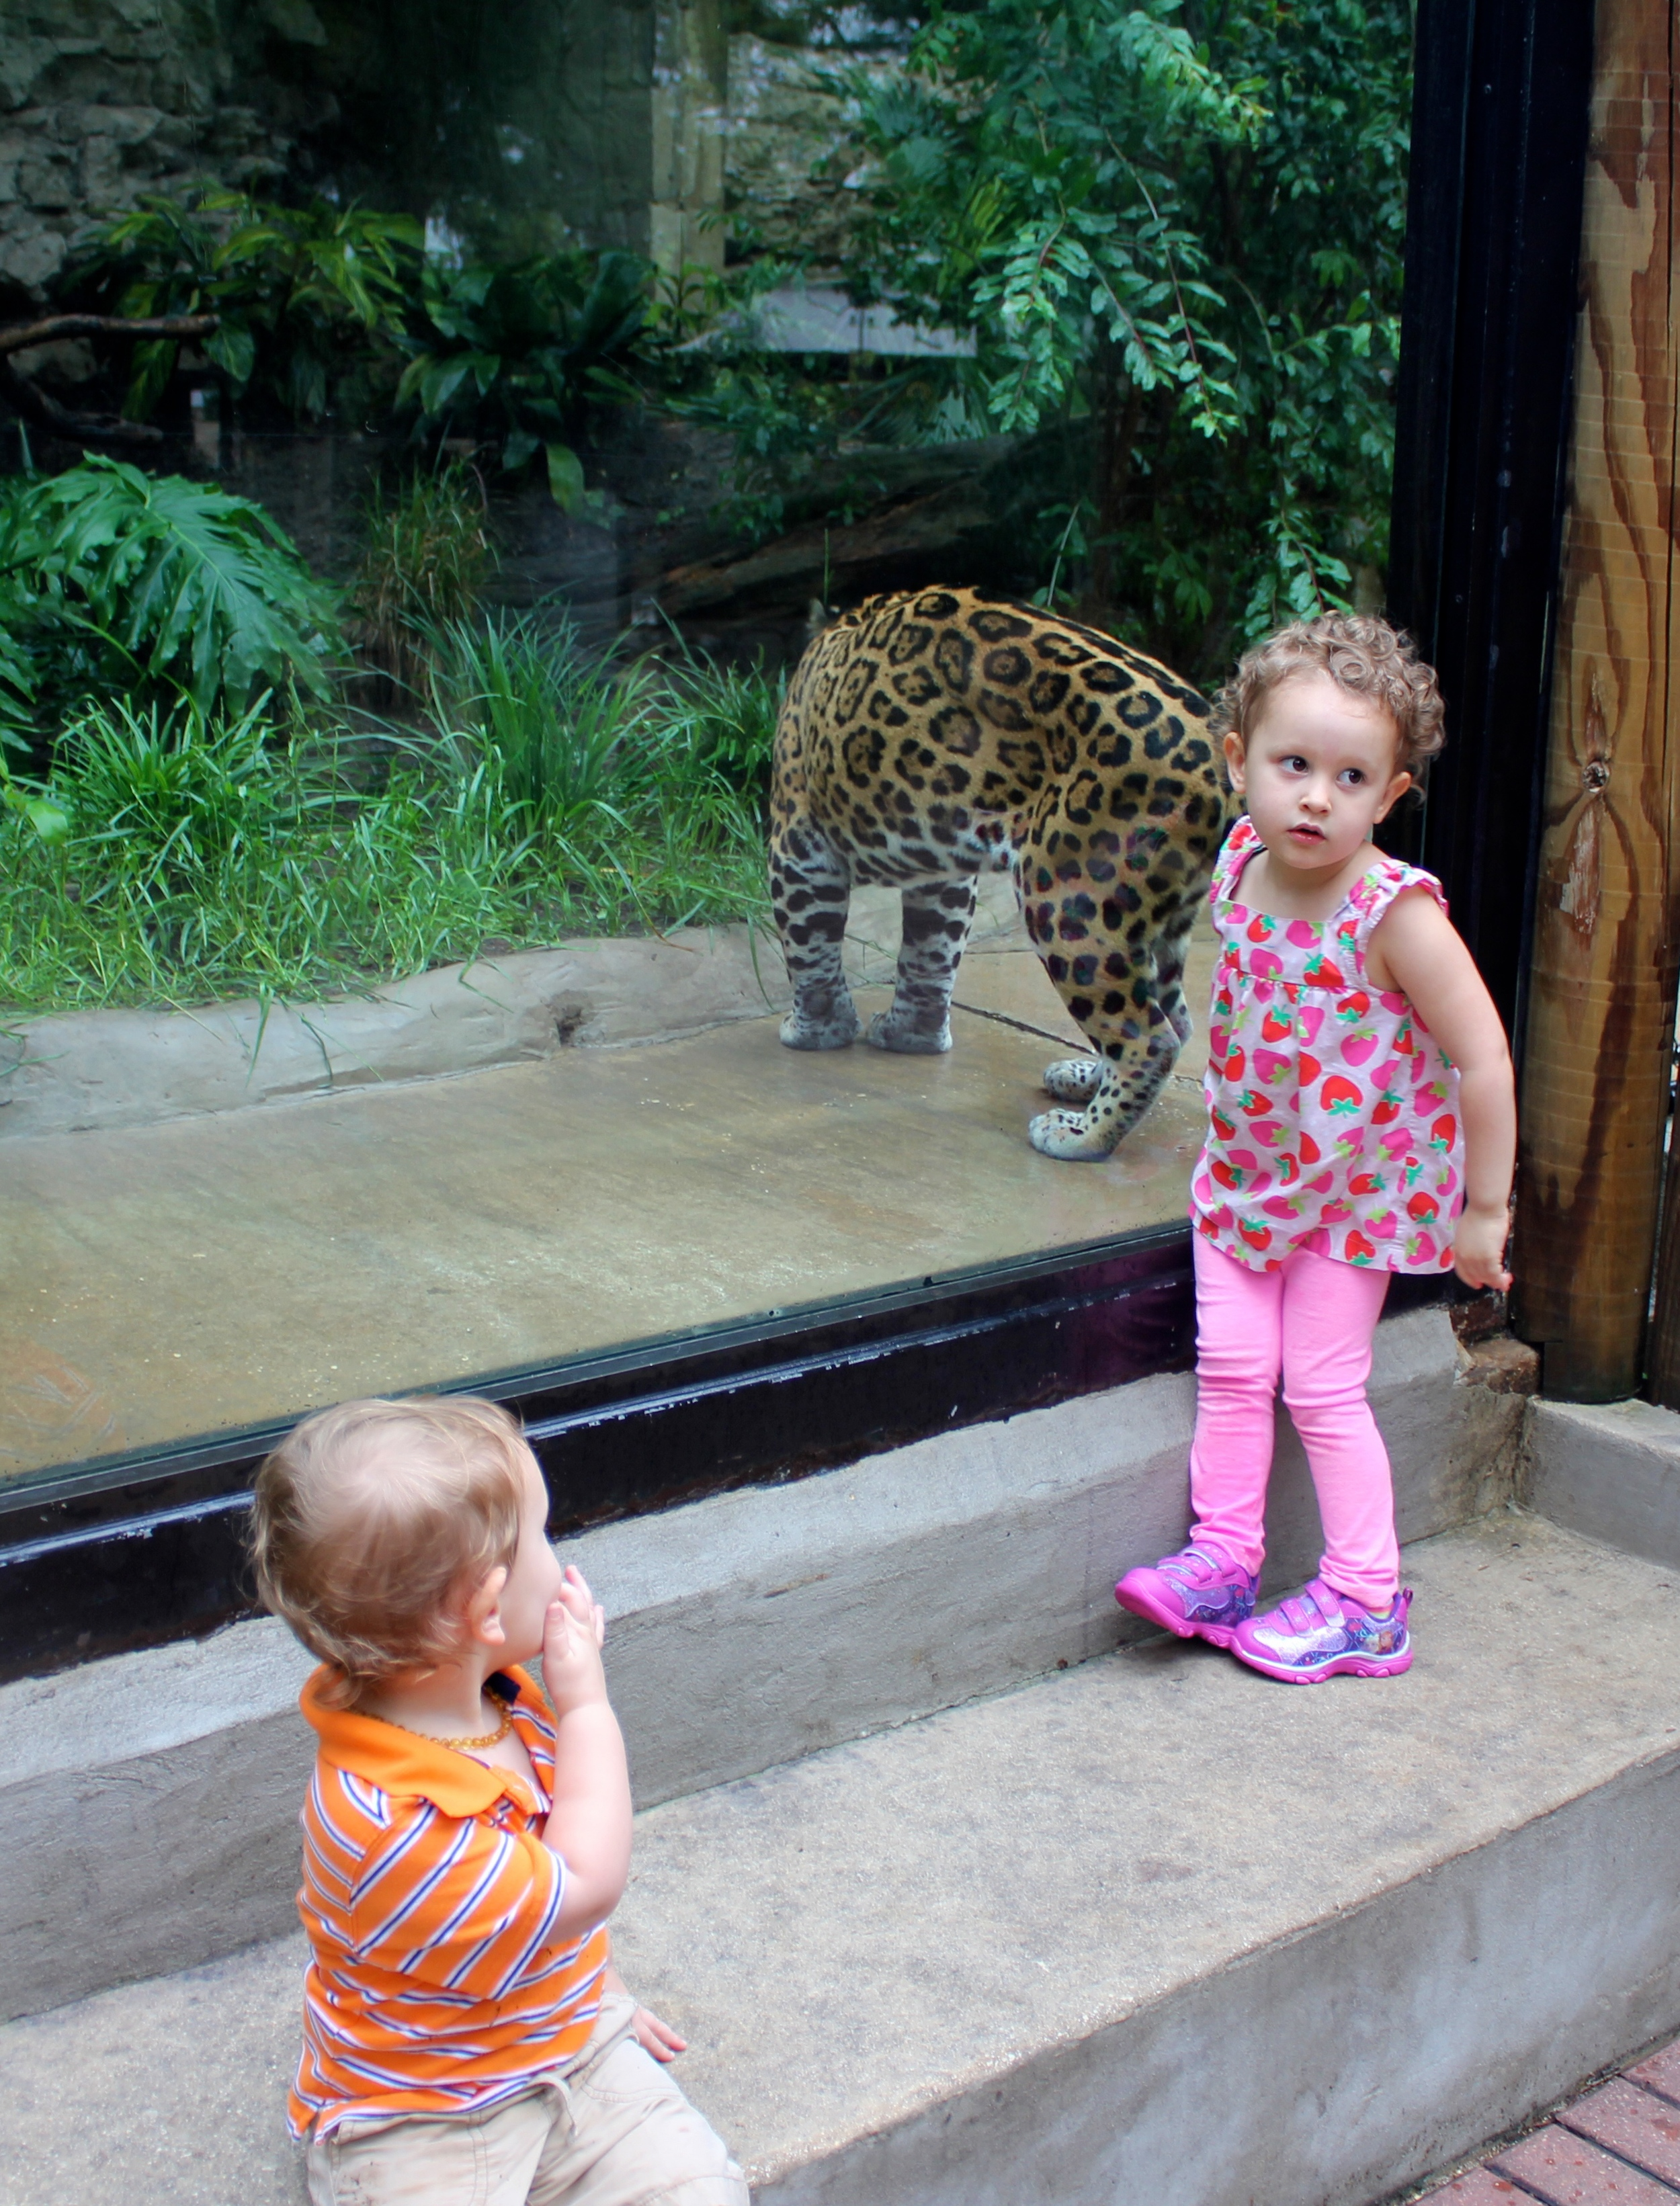 Judah & Kenzie with the jaguar - up close and personal.